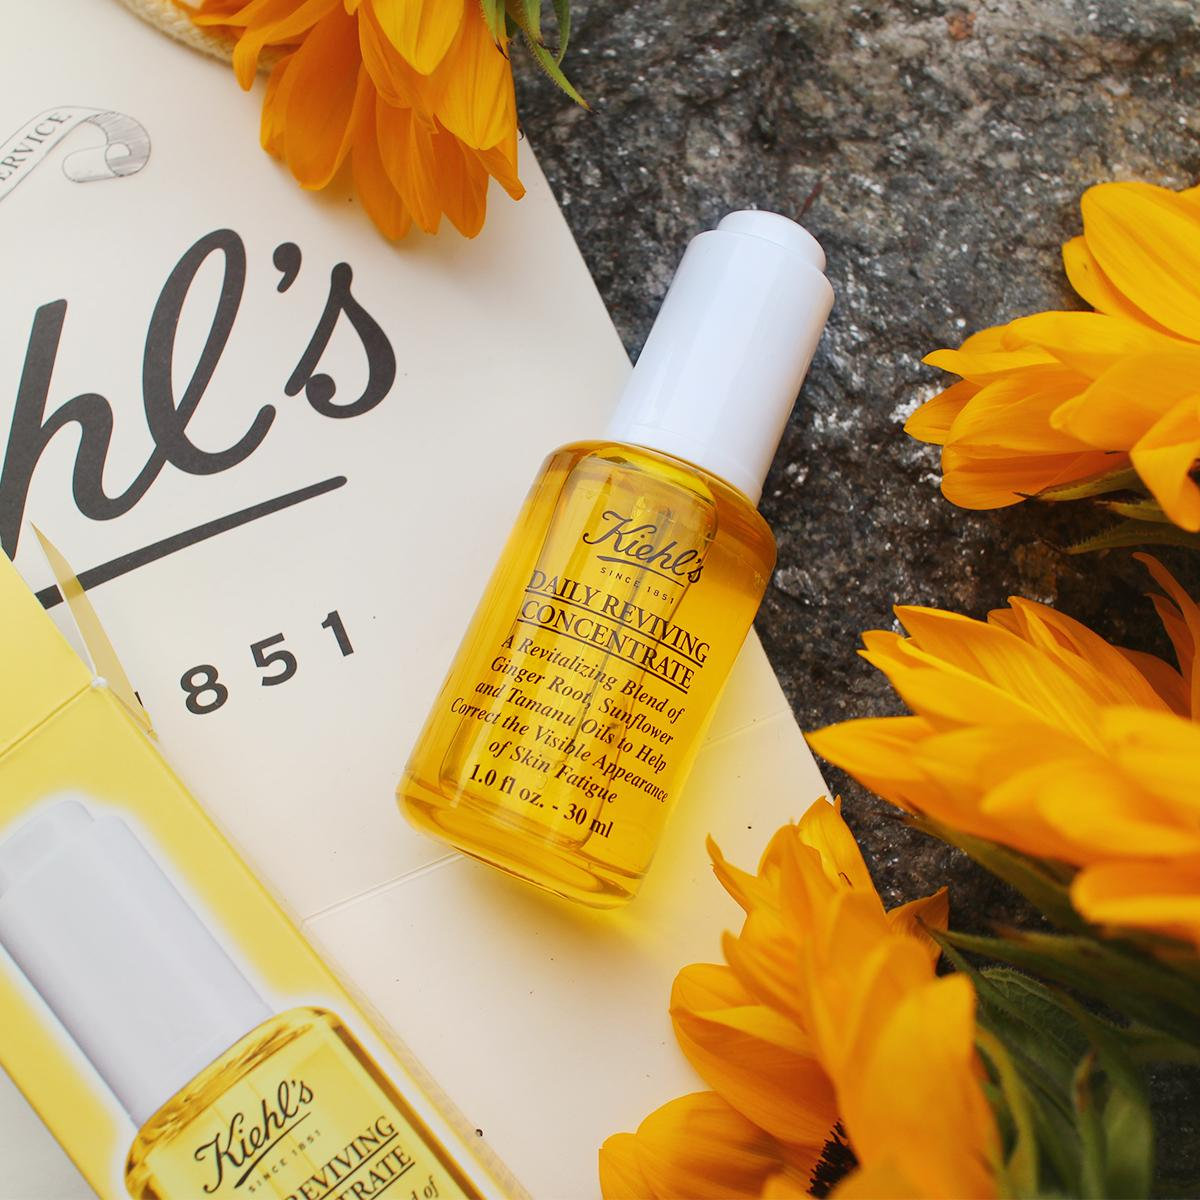 We're giving you the chance to win the brand new Daily Reviving Concentrate by @kiehlsuk simply RT us to win! http://t.co/5S0Rv9nA96